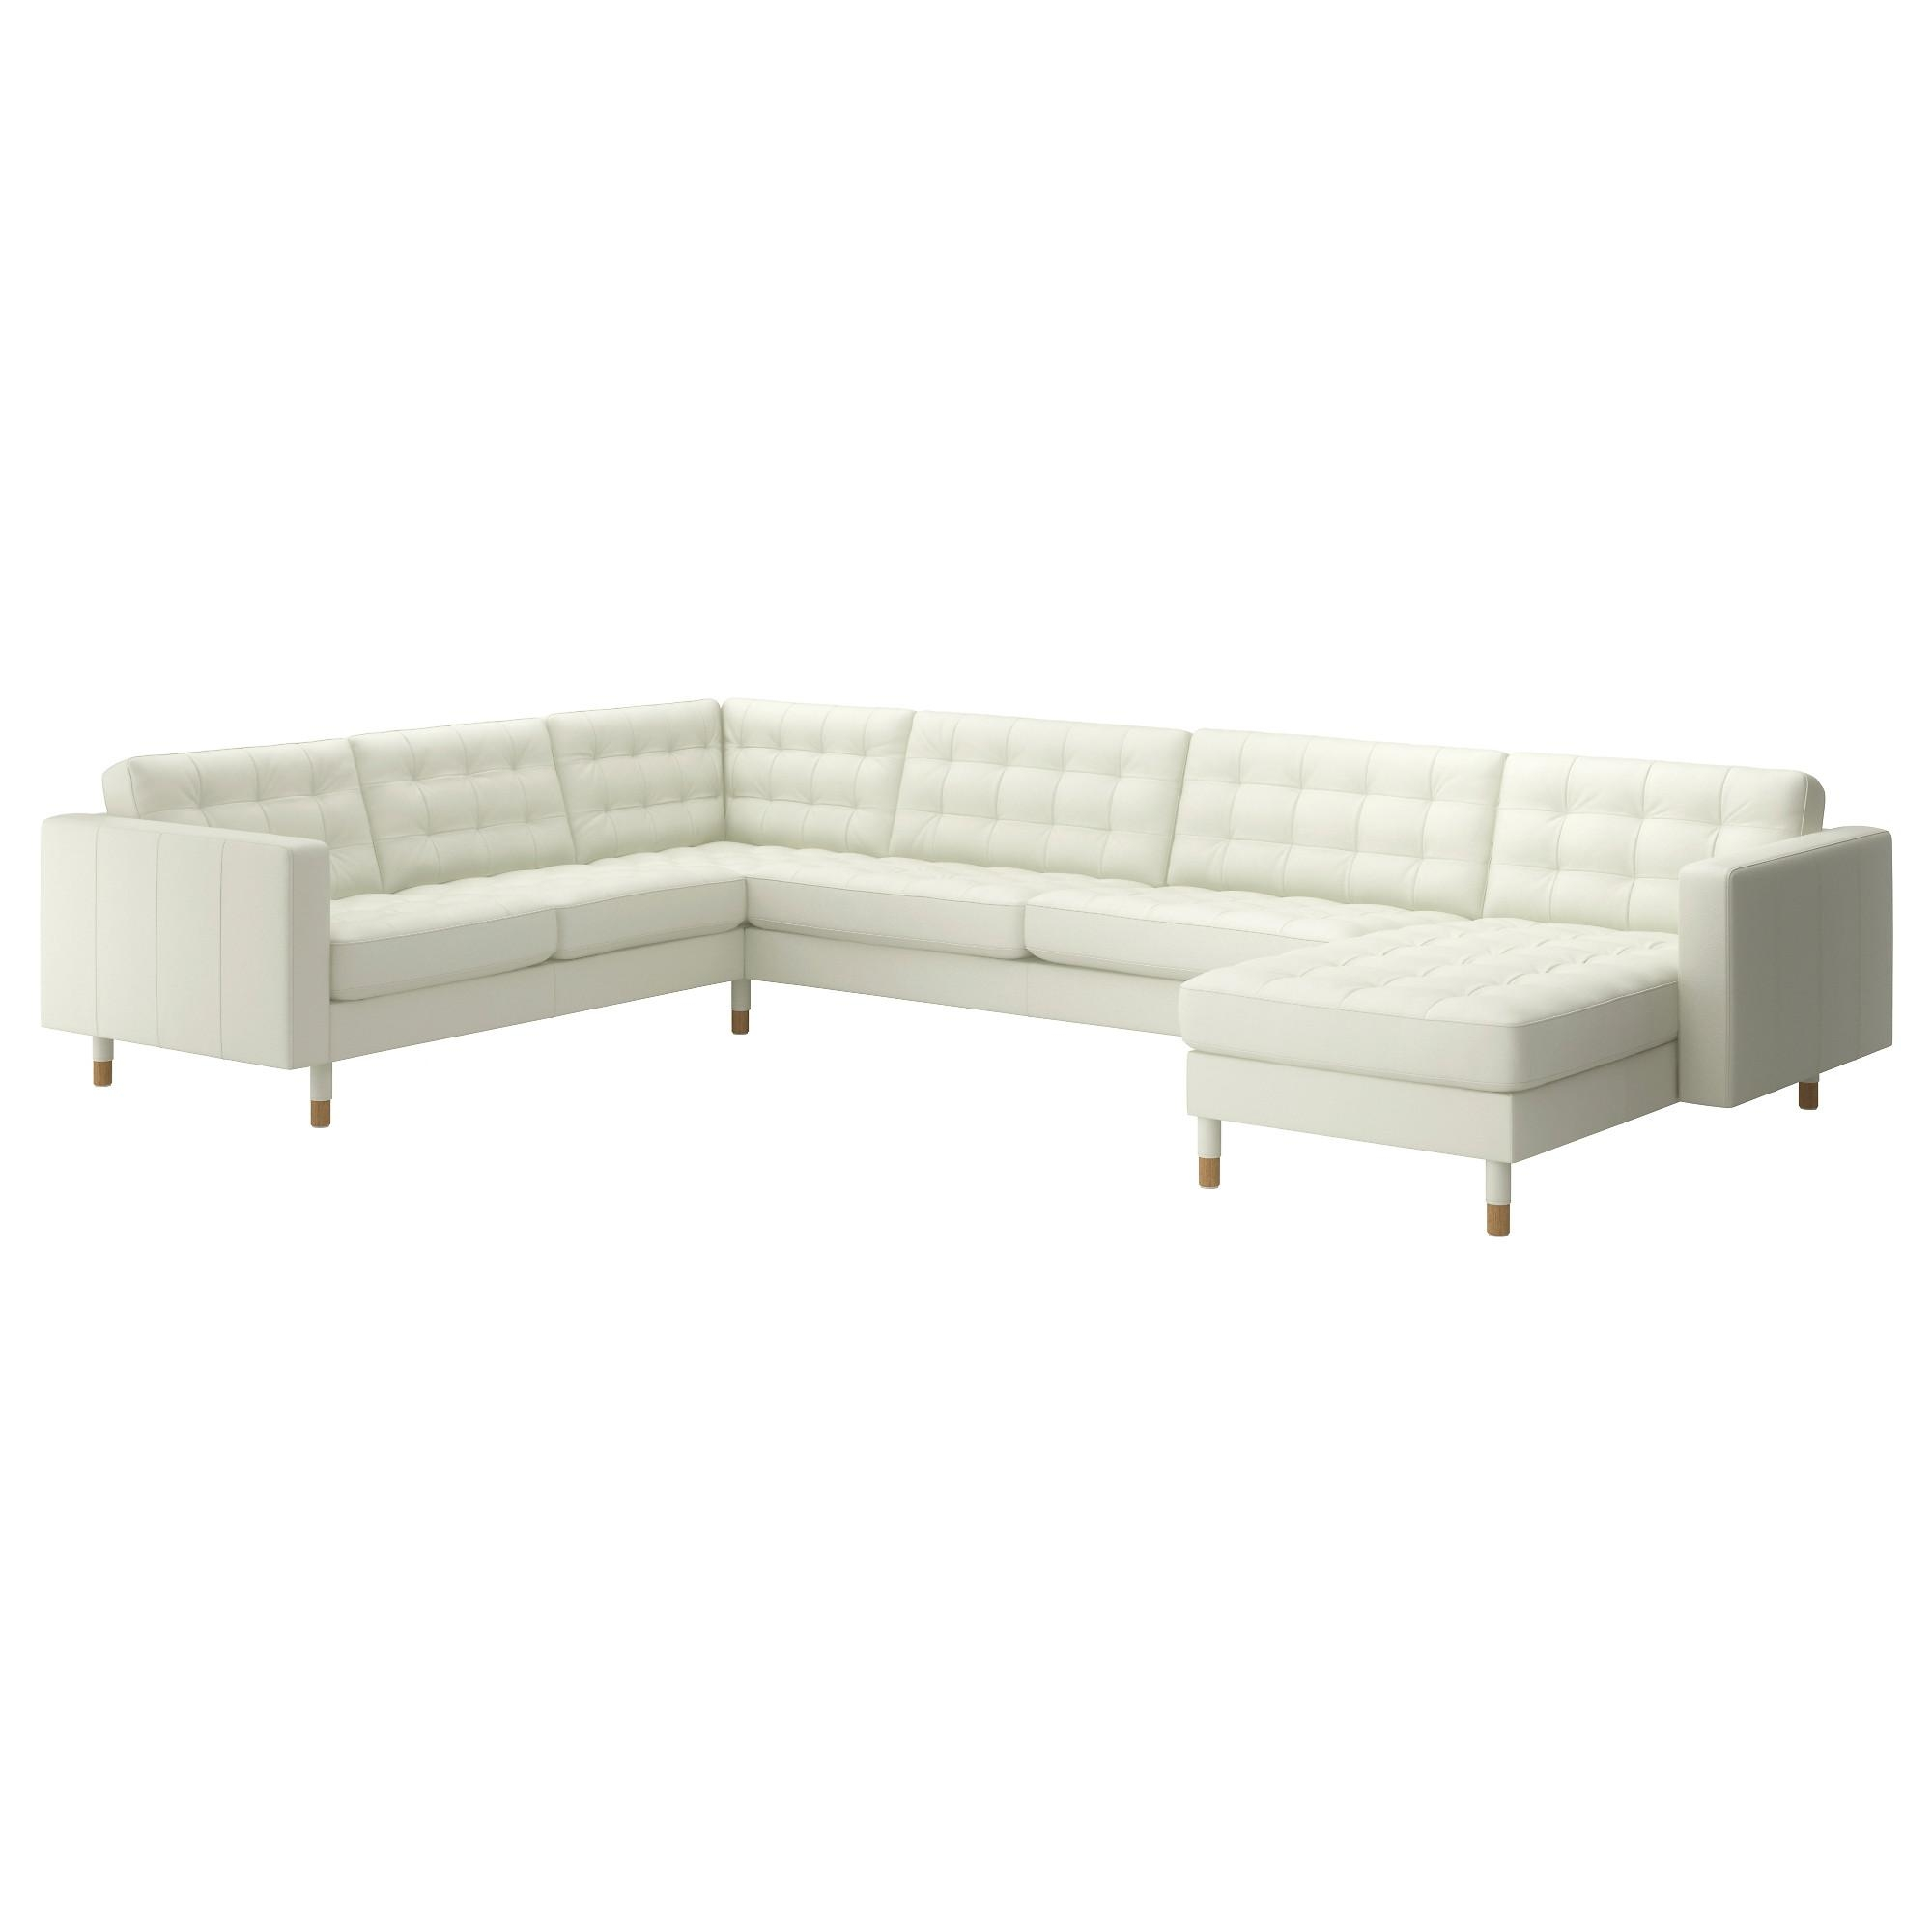 Leather & Faux Leather Couches, Chairs & Ottomans – Ikea Intended For White Sofa Chairs (Image 5 of 20)